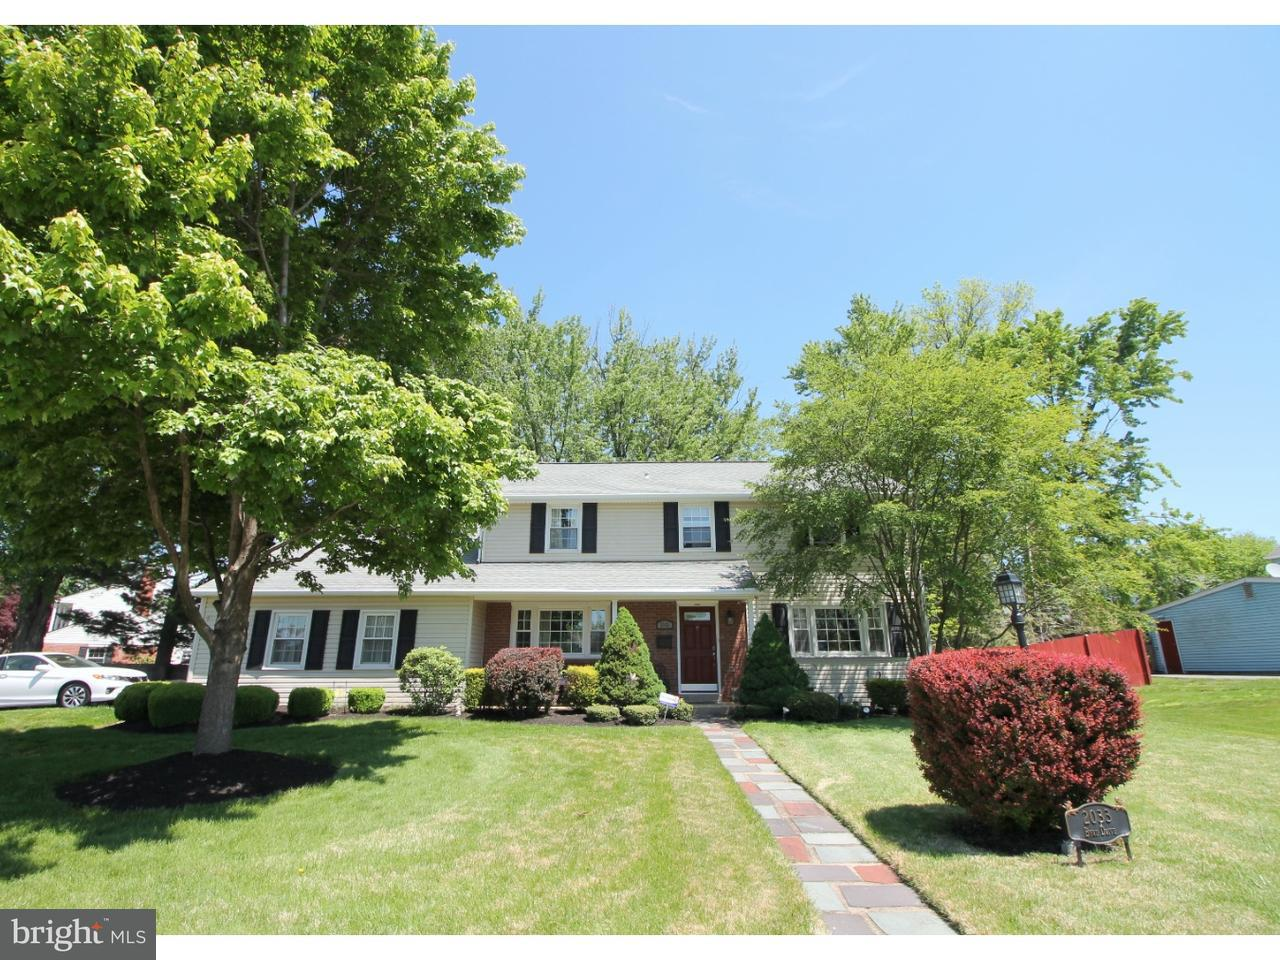 Single Family Home for Sale at 2033 BYRD Drive Jeffersonville, Pennsylvania 19403 United States